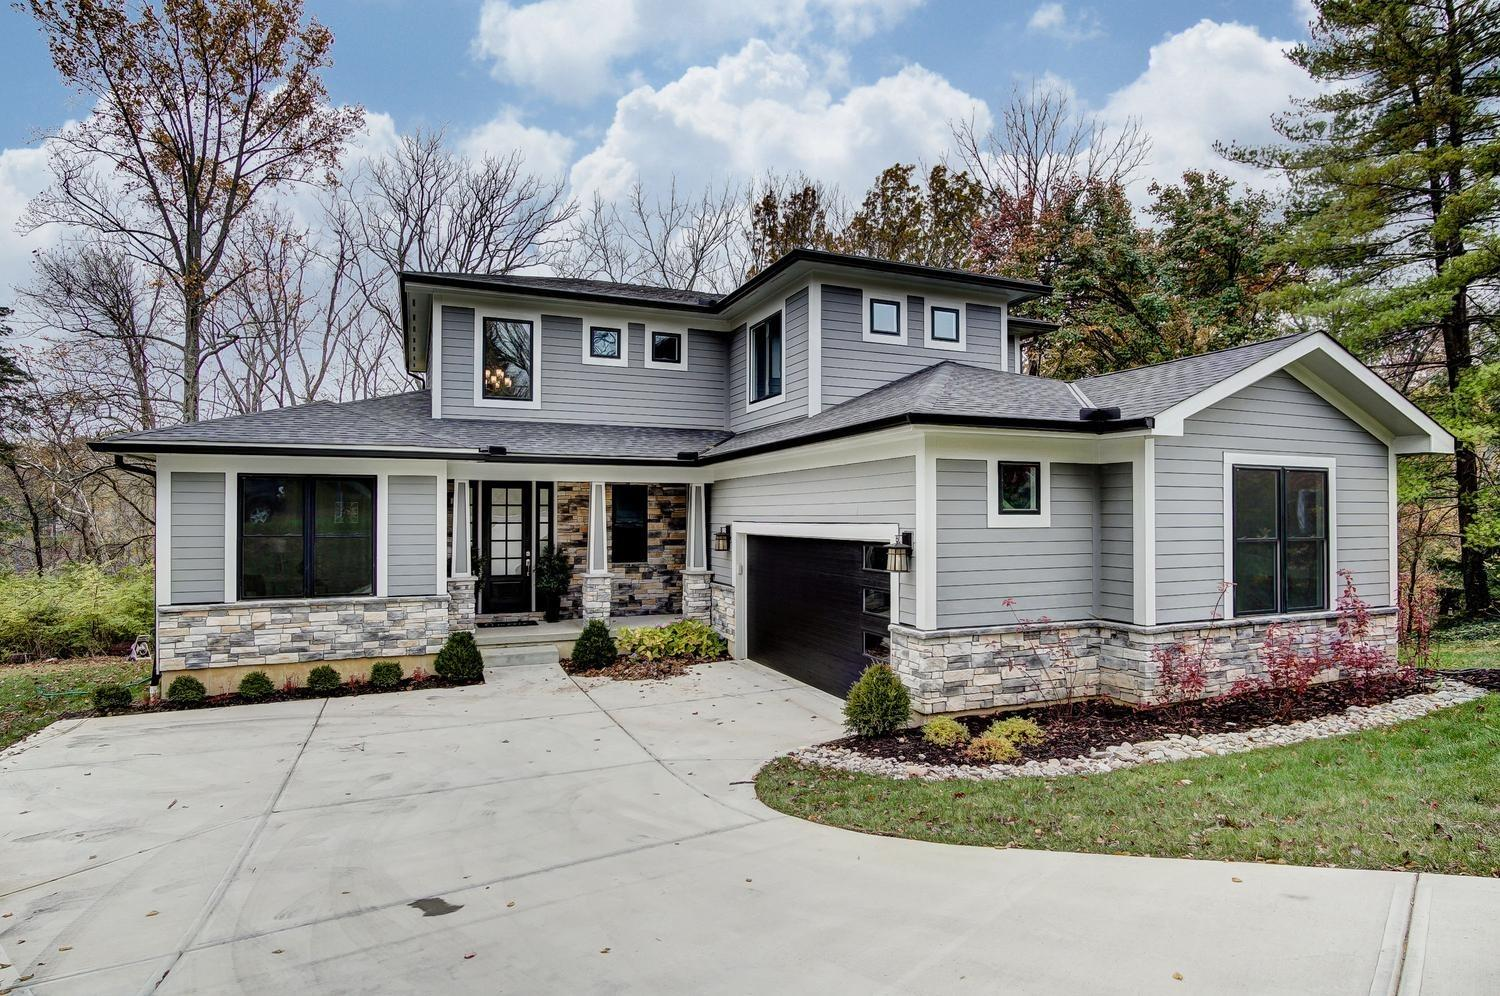 8701 Appleknoll Ln Sycamore Twp., OH